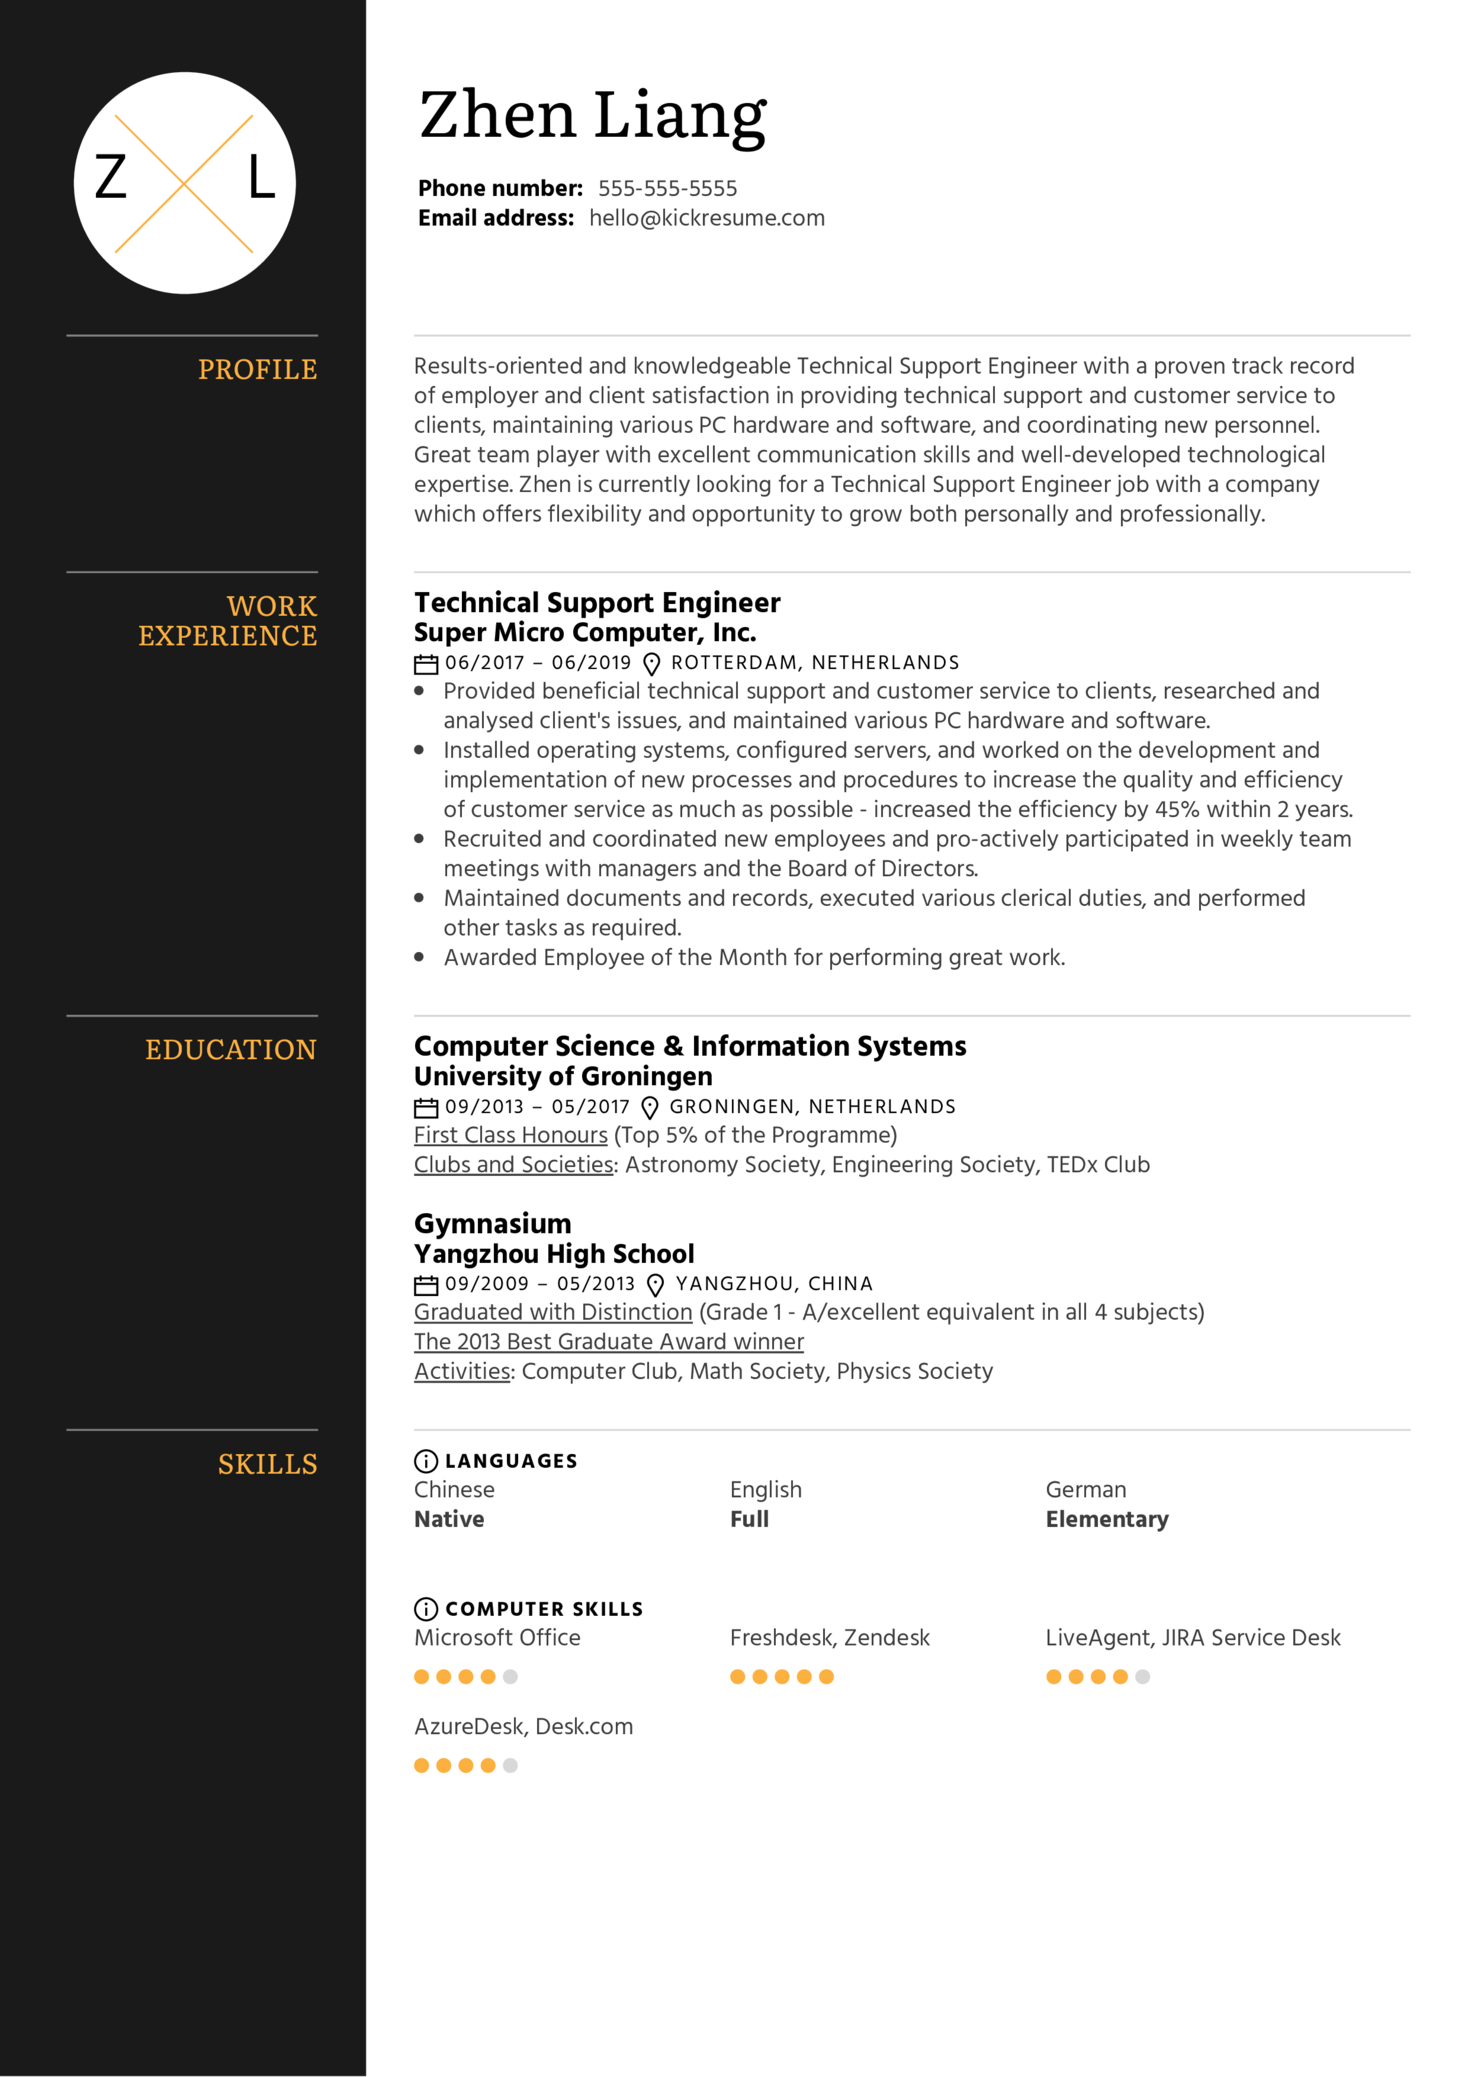 Technical Support Engineer Resume Template (Part 1)